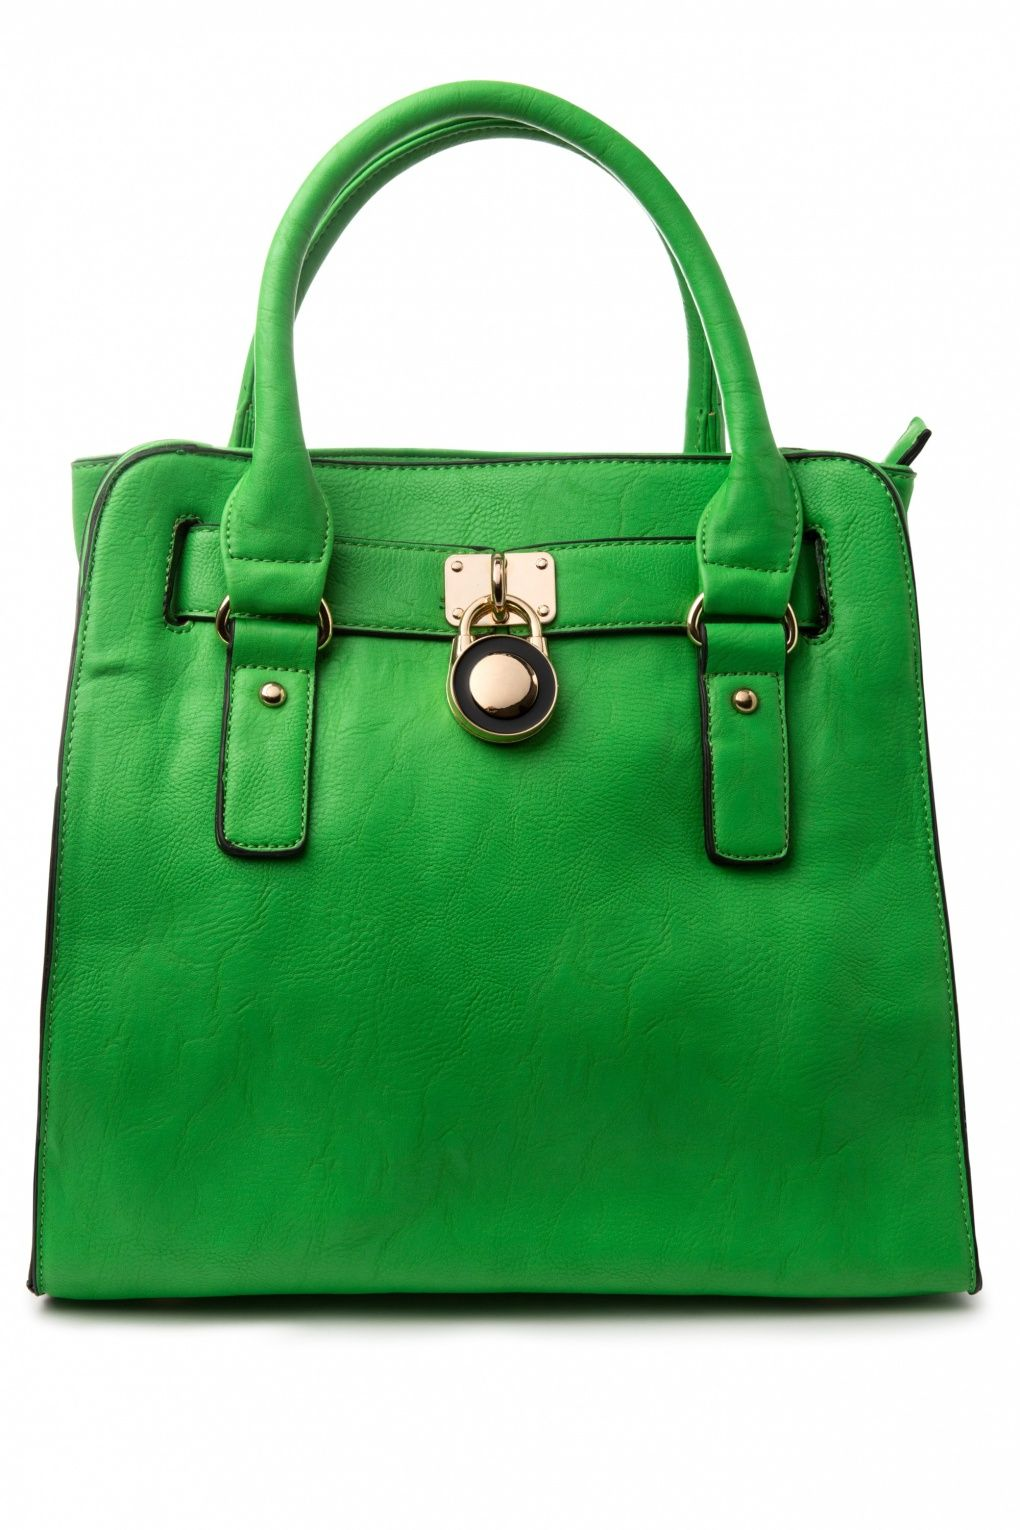 Milan - 60s Essential Shopping Friend Bright Green Handbag ...